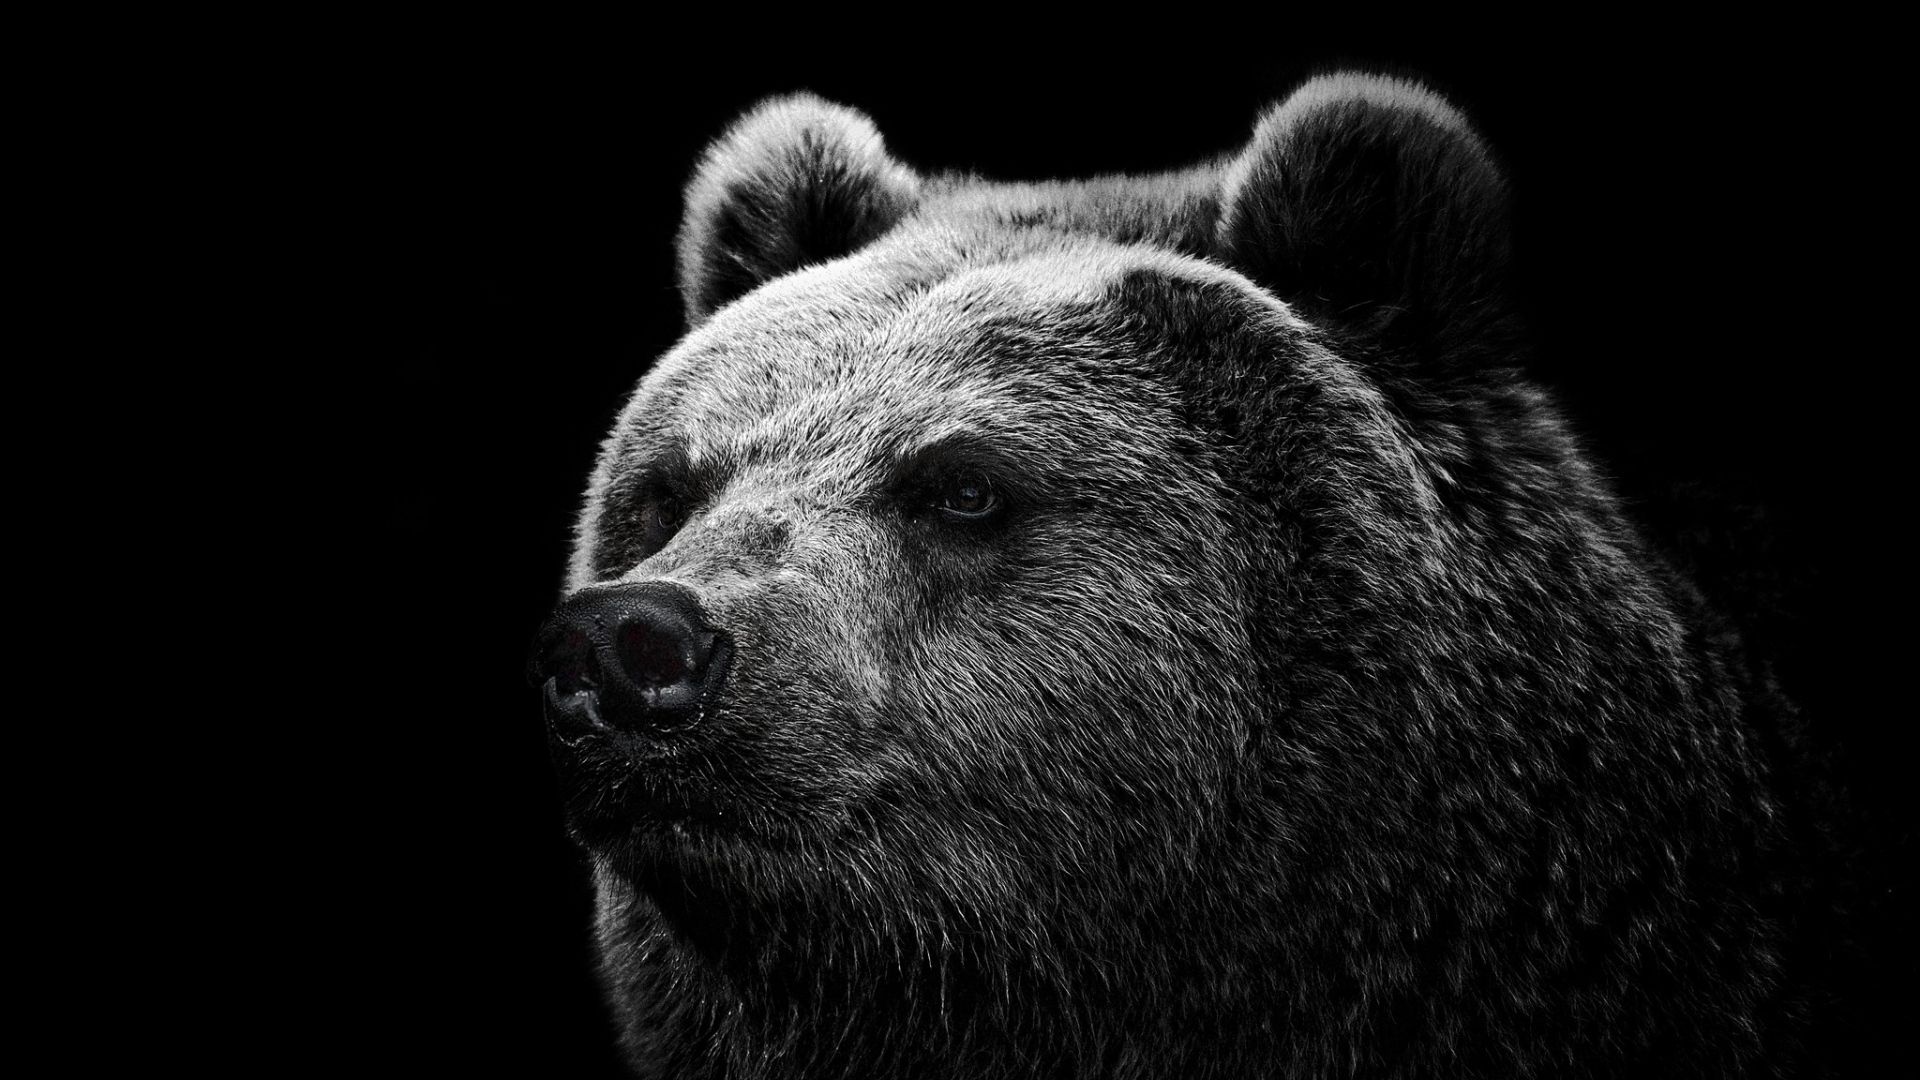 Wallpaper Bear